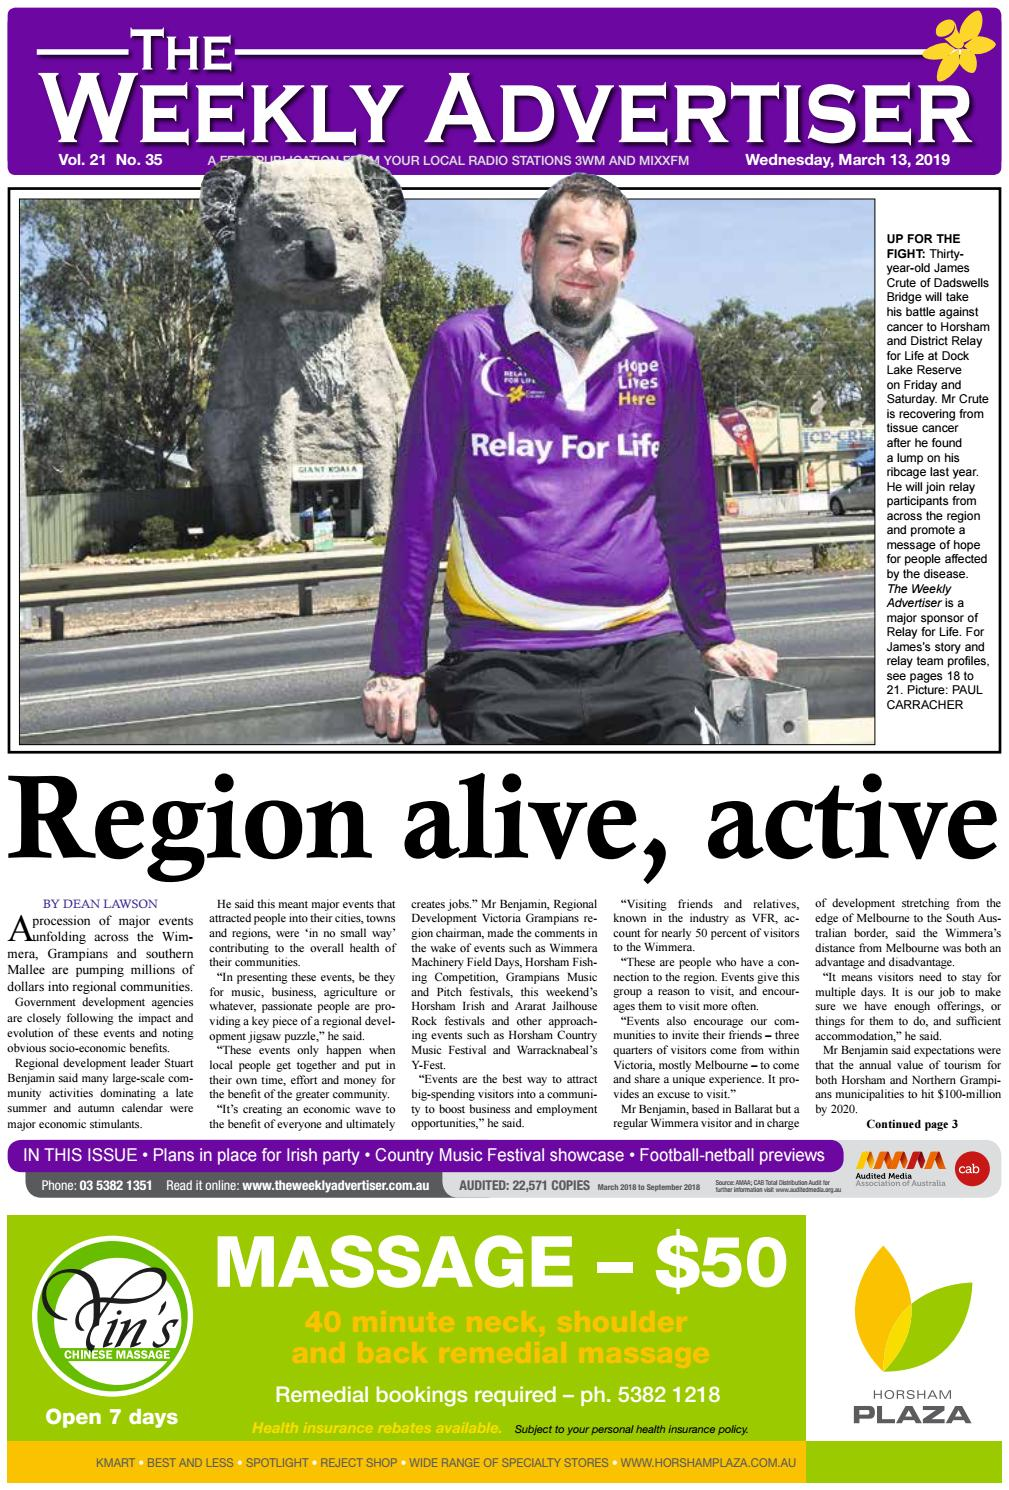 508ccbc58f076 The Weekly Advertiser - Wednesday